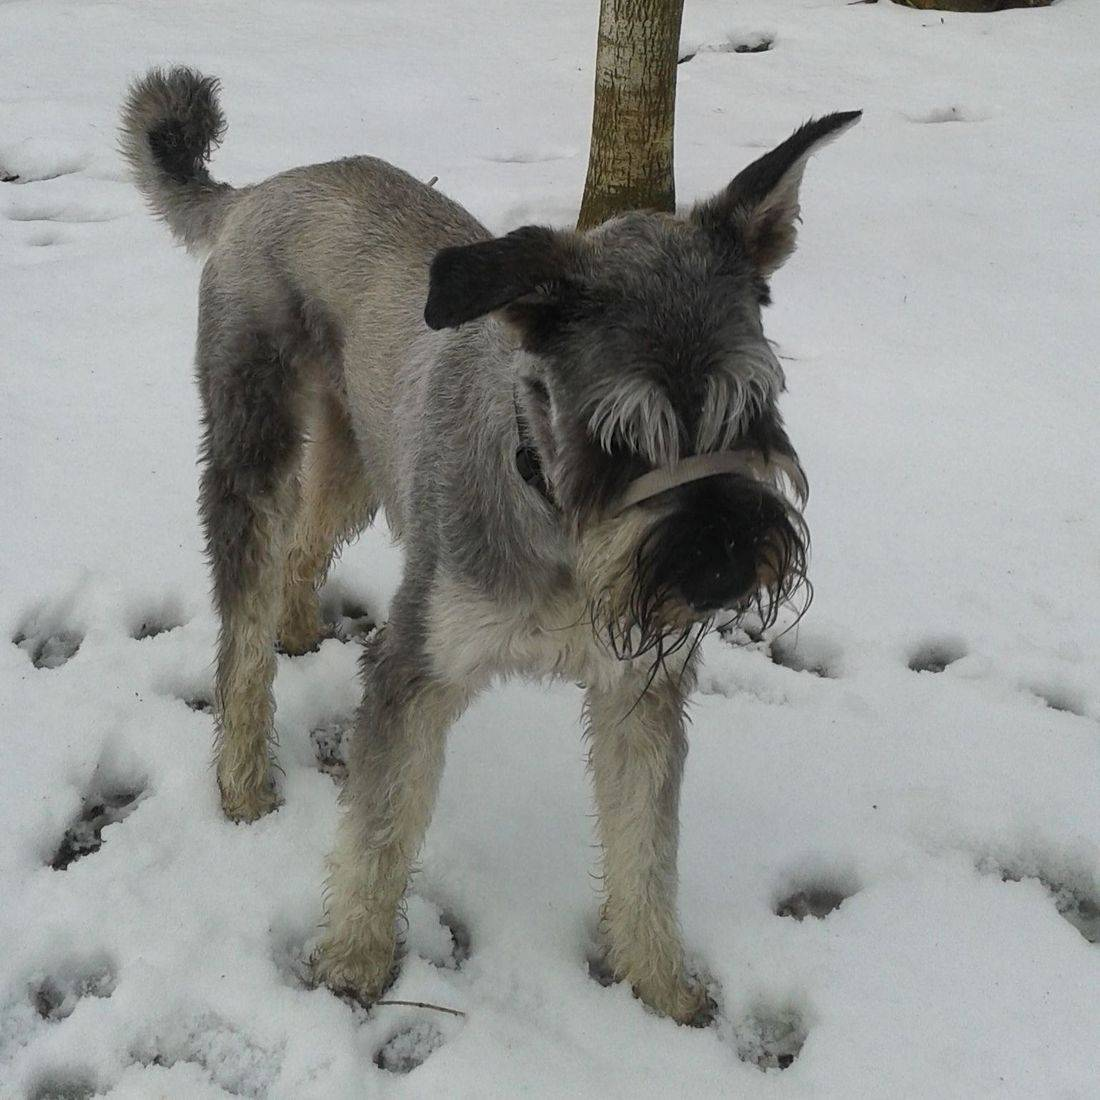 Giant Schnauzer playing in the snow